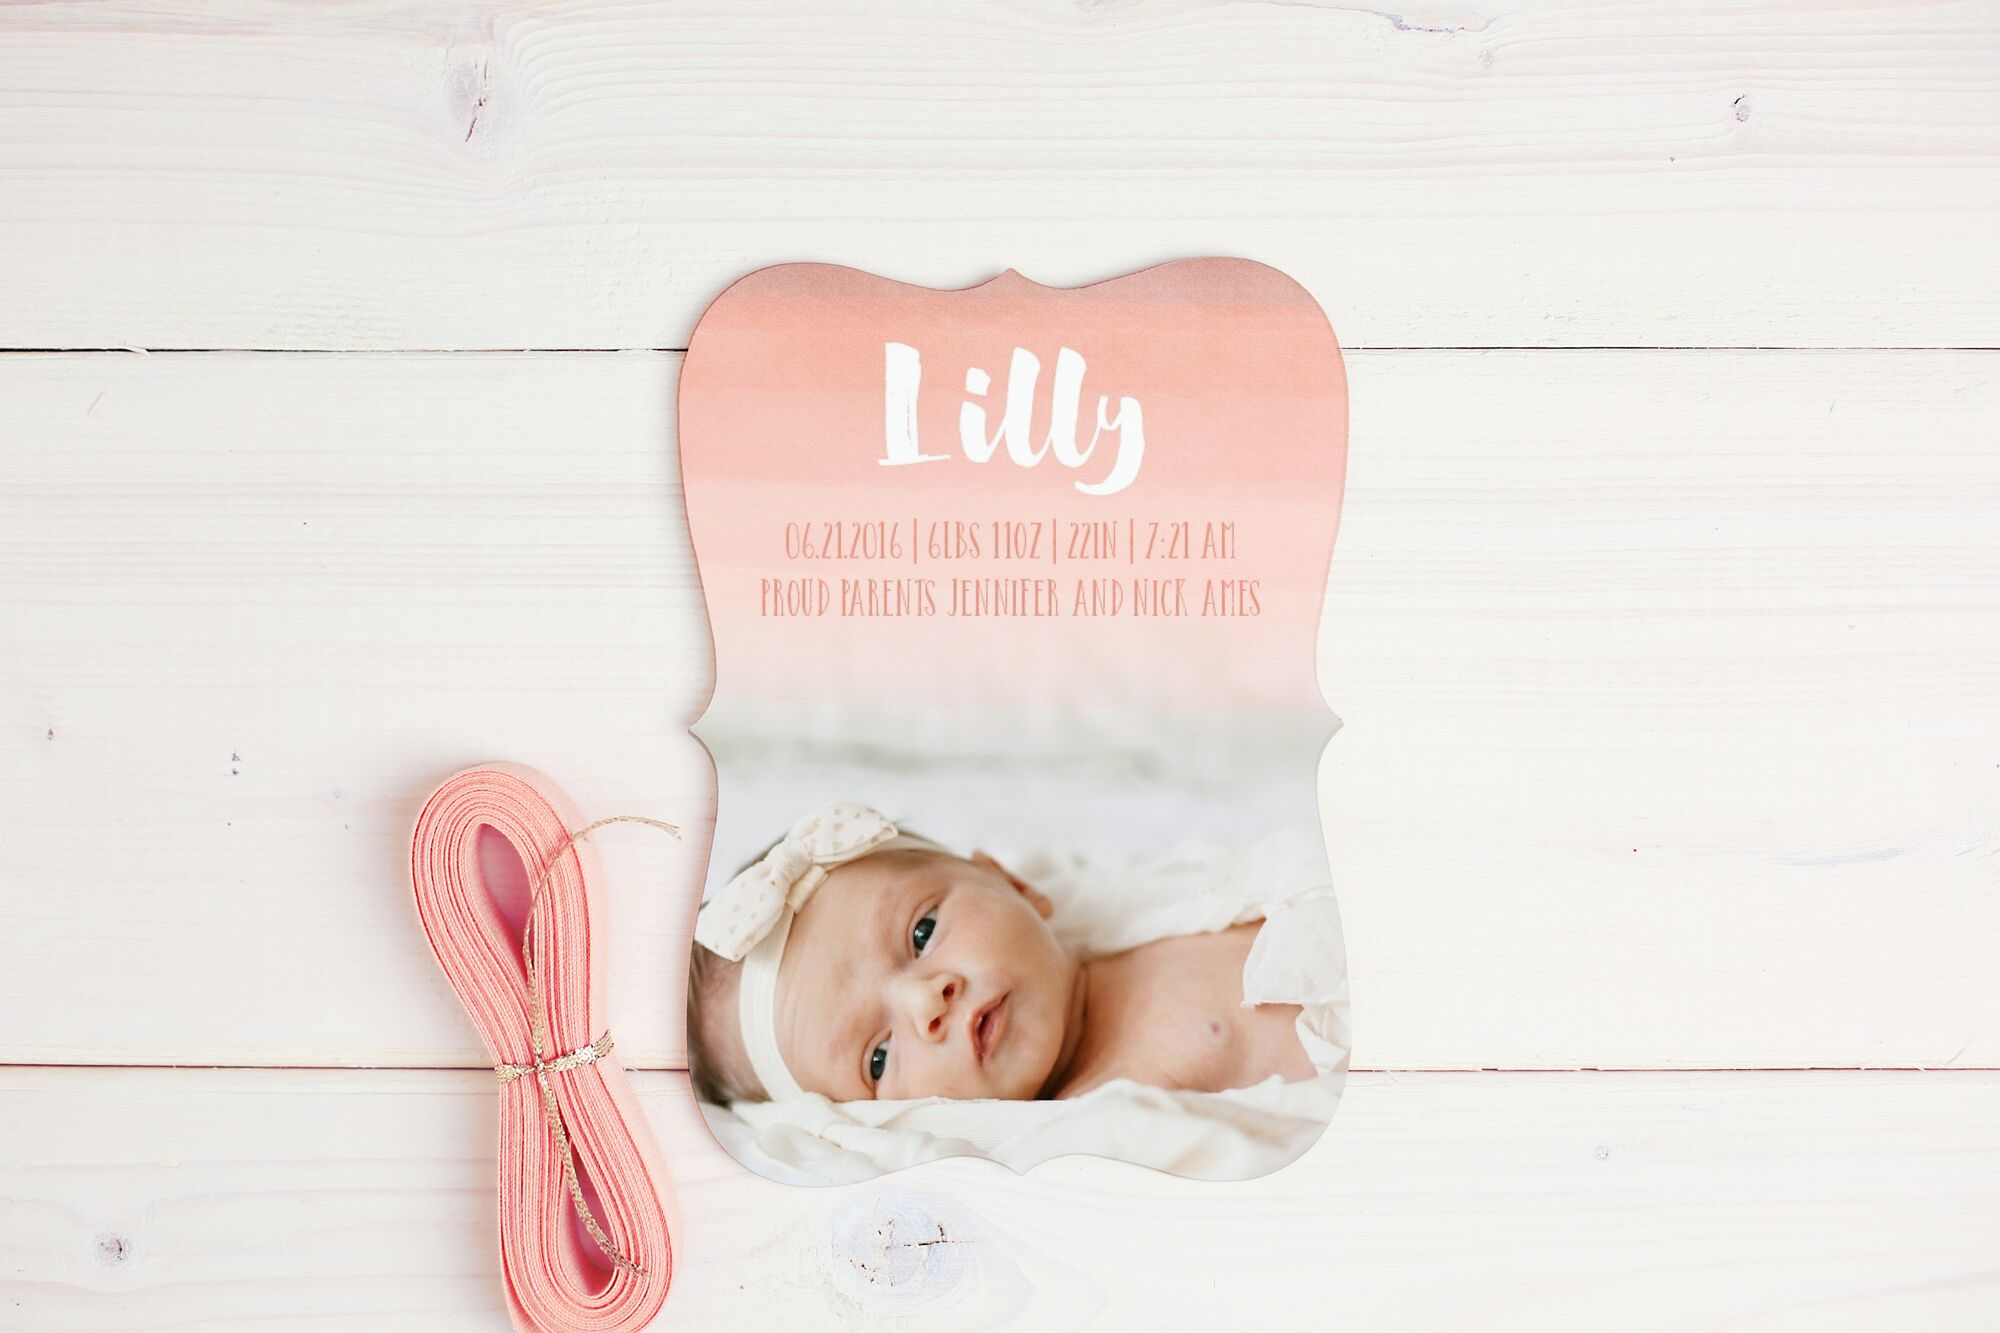 unspecified-7